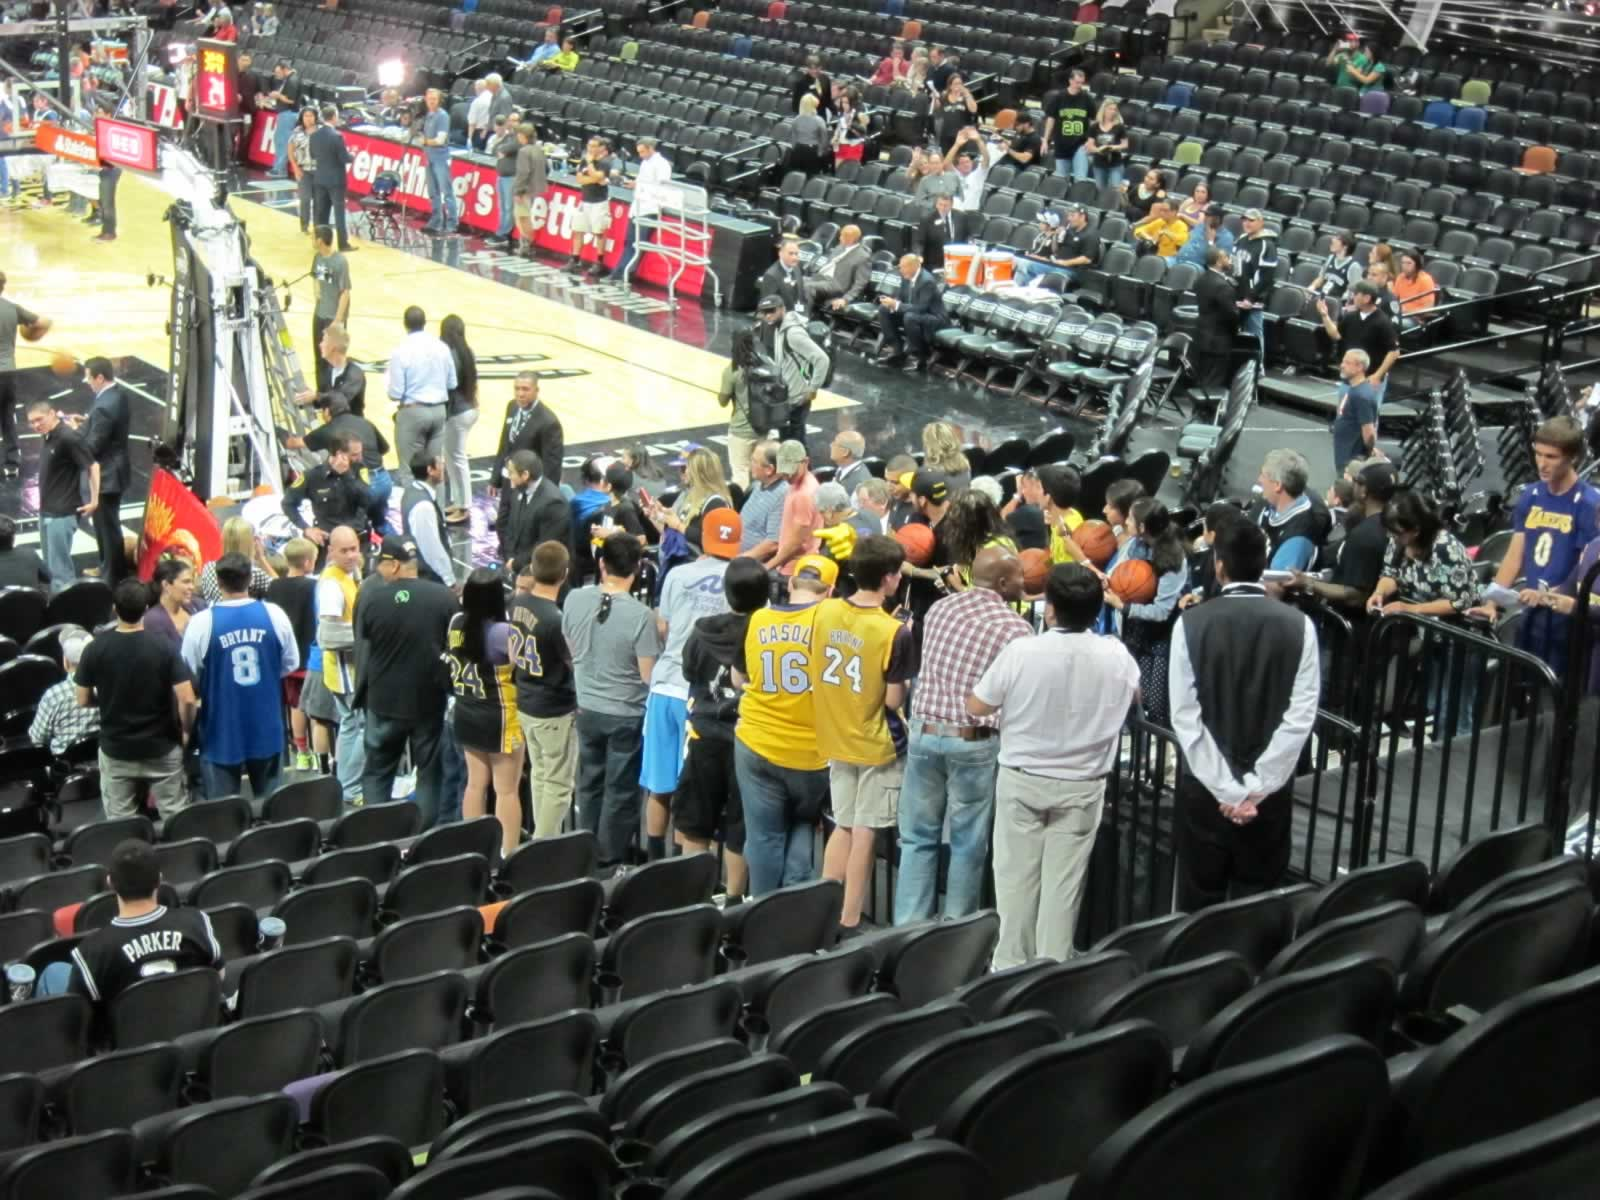 Entry Tunnel Near Section 115 at the AT&T Center